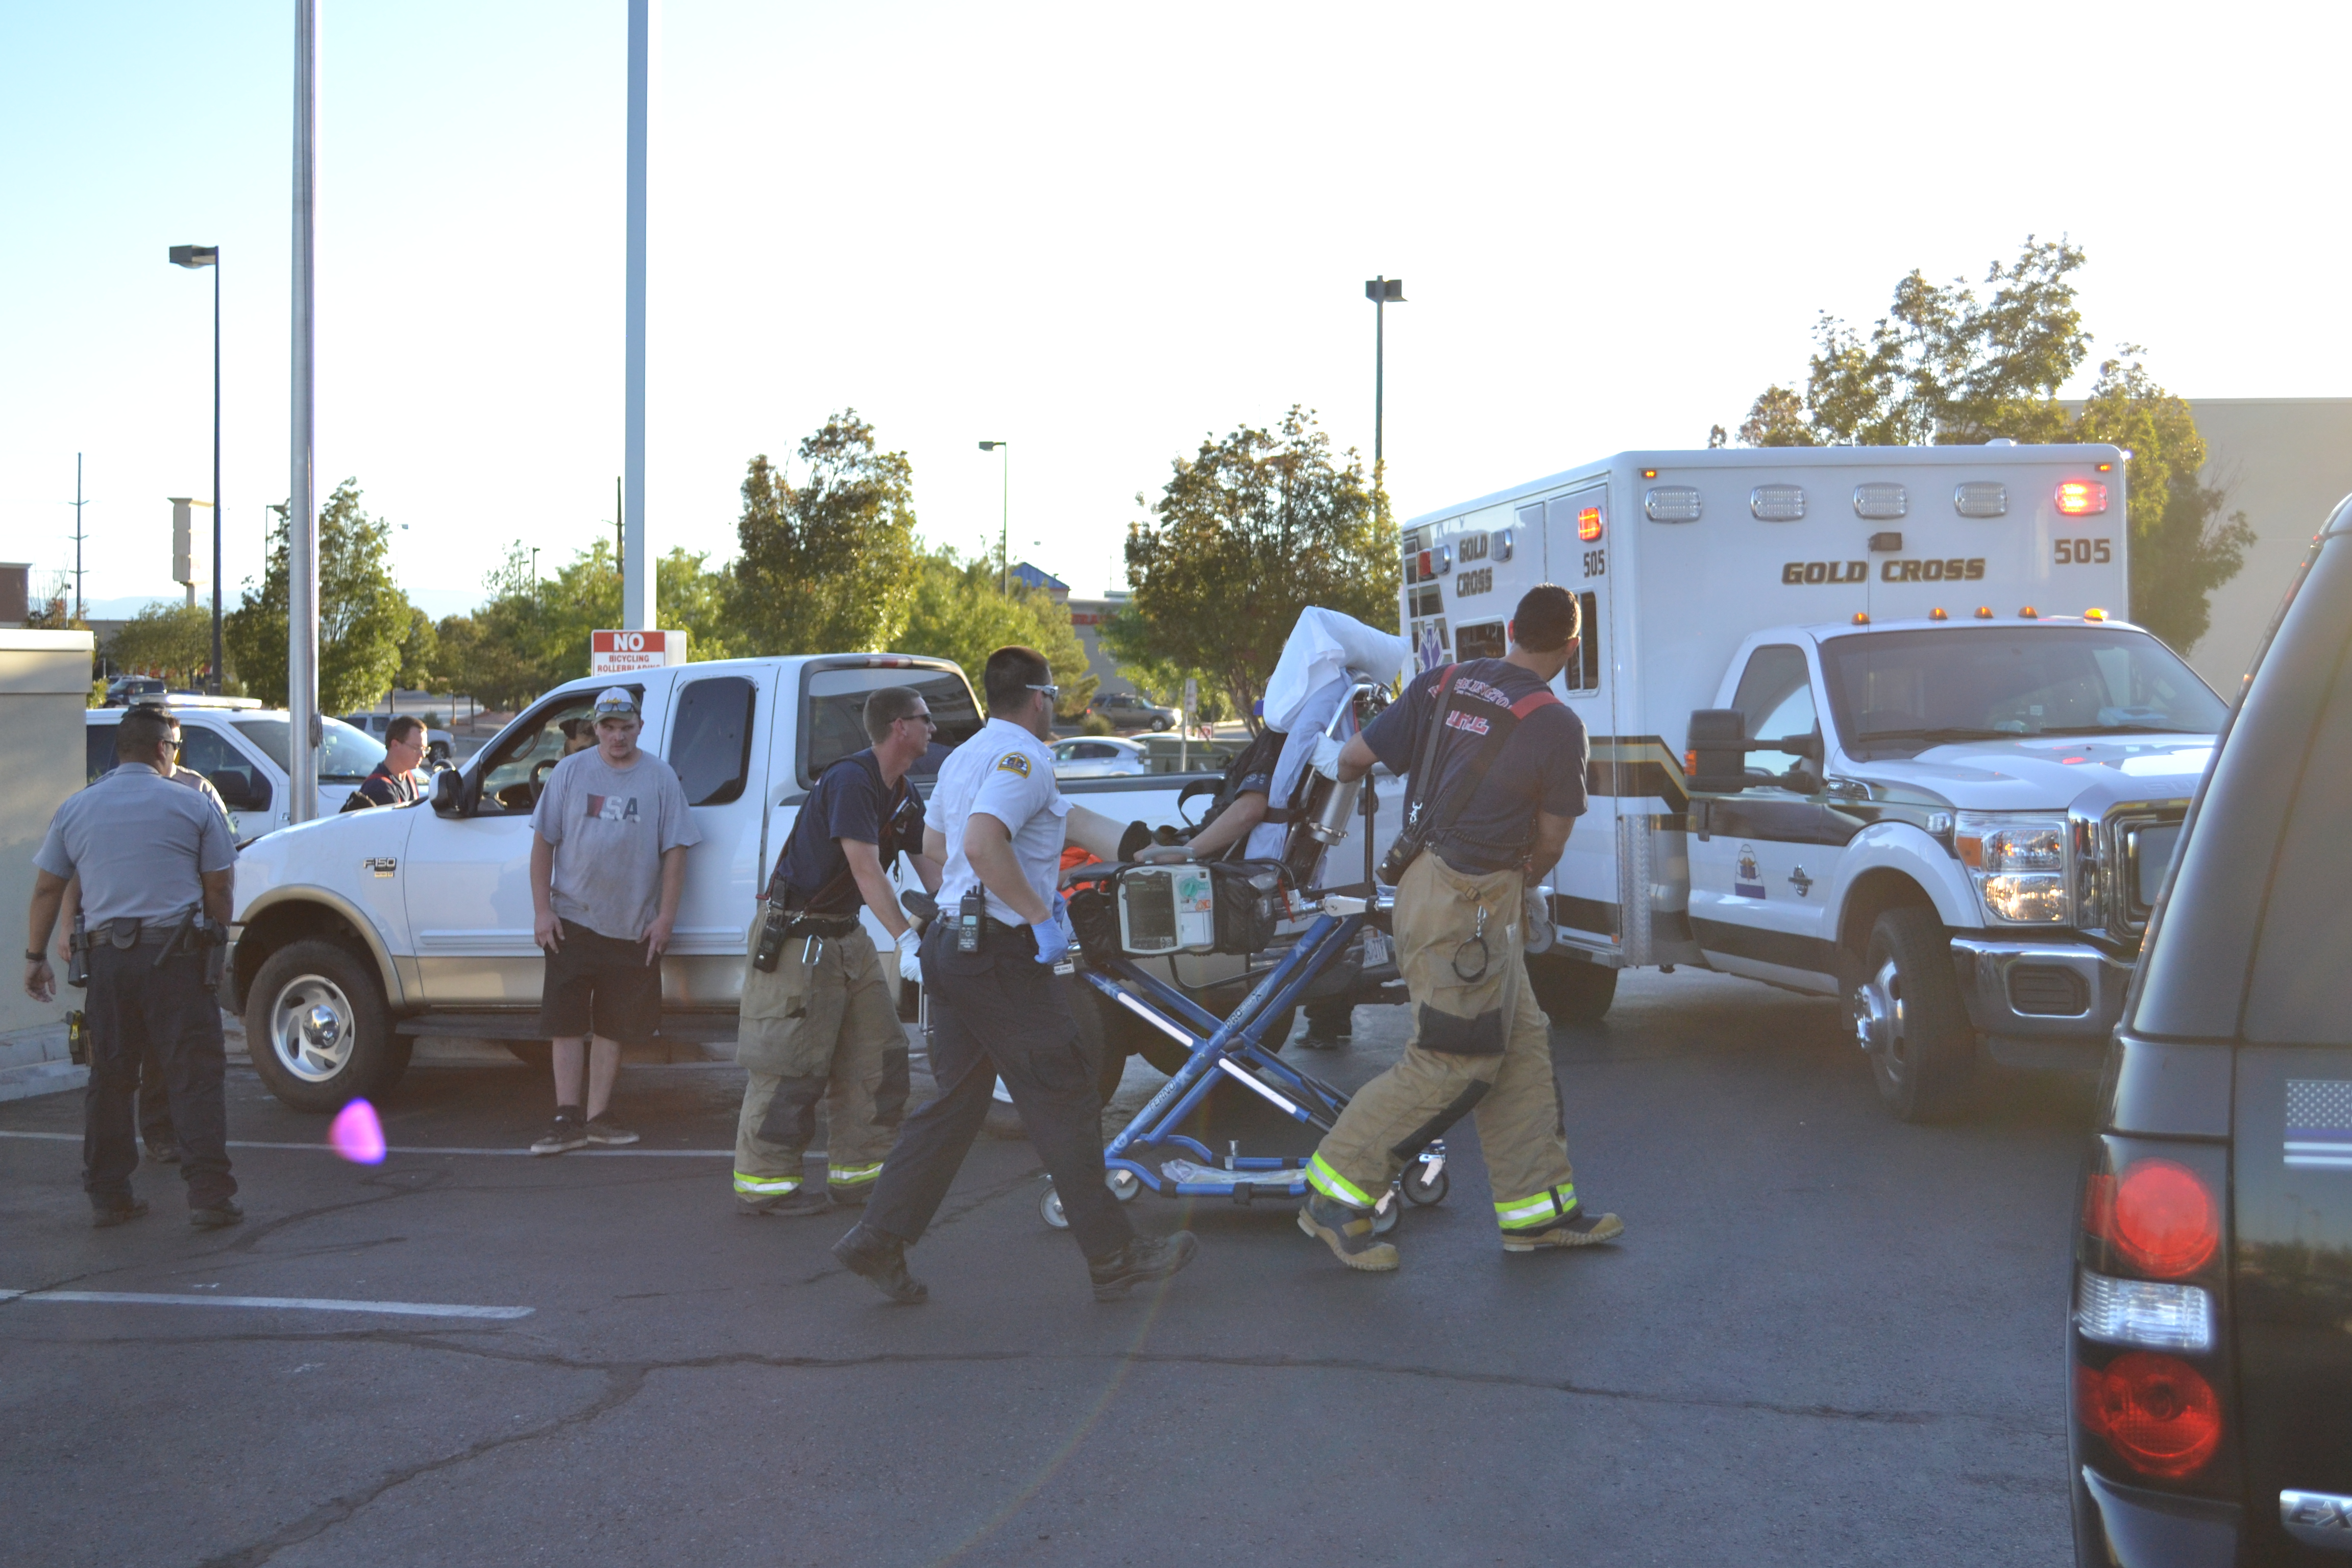 Police and emergency crews respond when a man becomes pinned against wall after reportedly attempting to push his truck, Washington City, Utah, Sept. 26, 2016 | Photo by Joseph Witham, St. George News